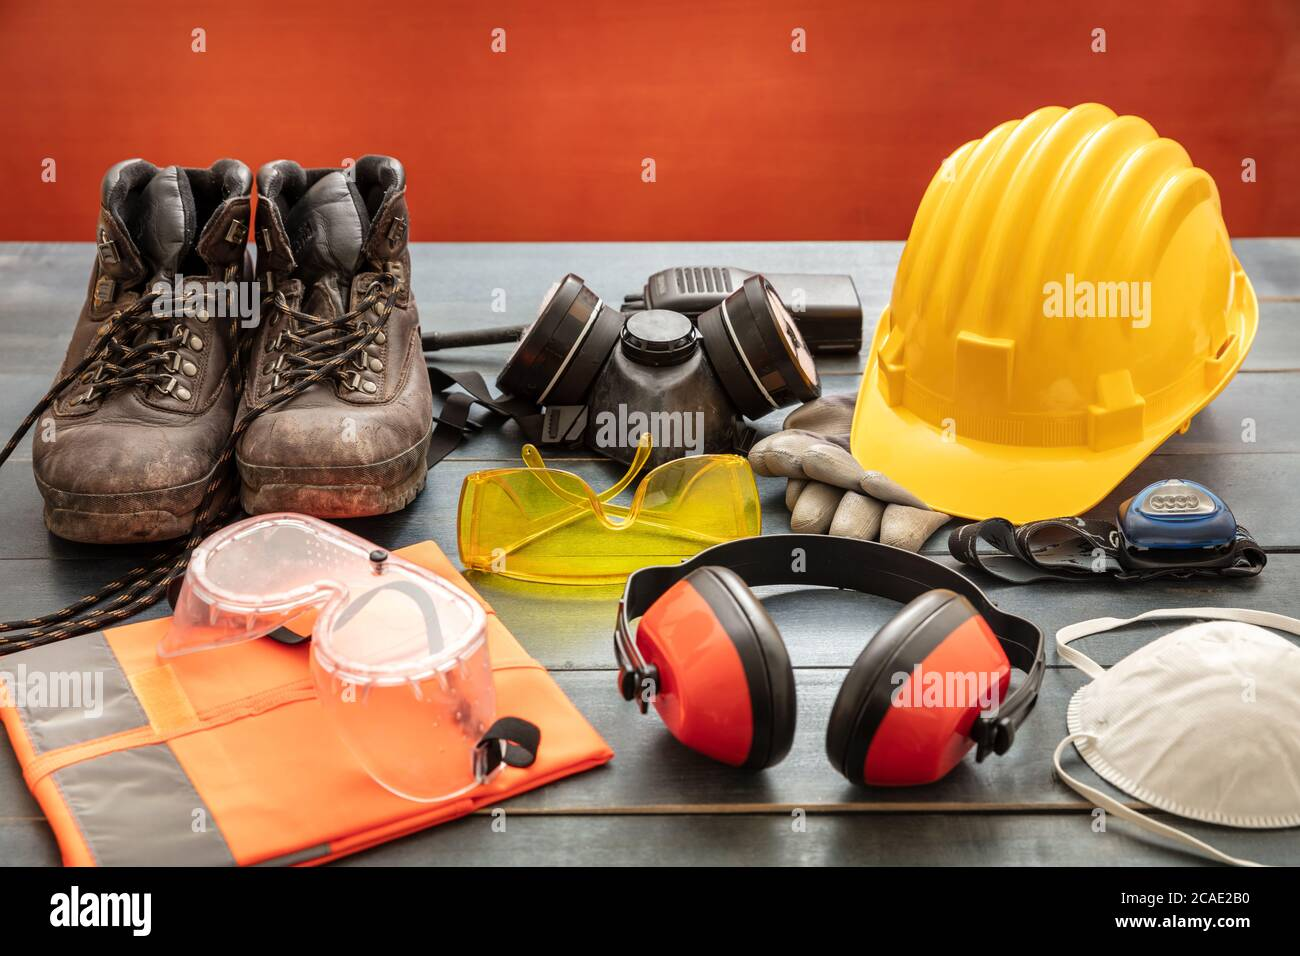 Work safety protection equipment. Industrial protective gear on wooden table, red color background. Construction site health and safety concept Stock Photo